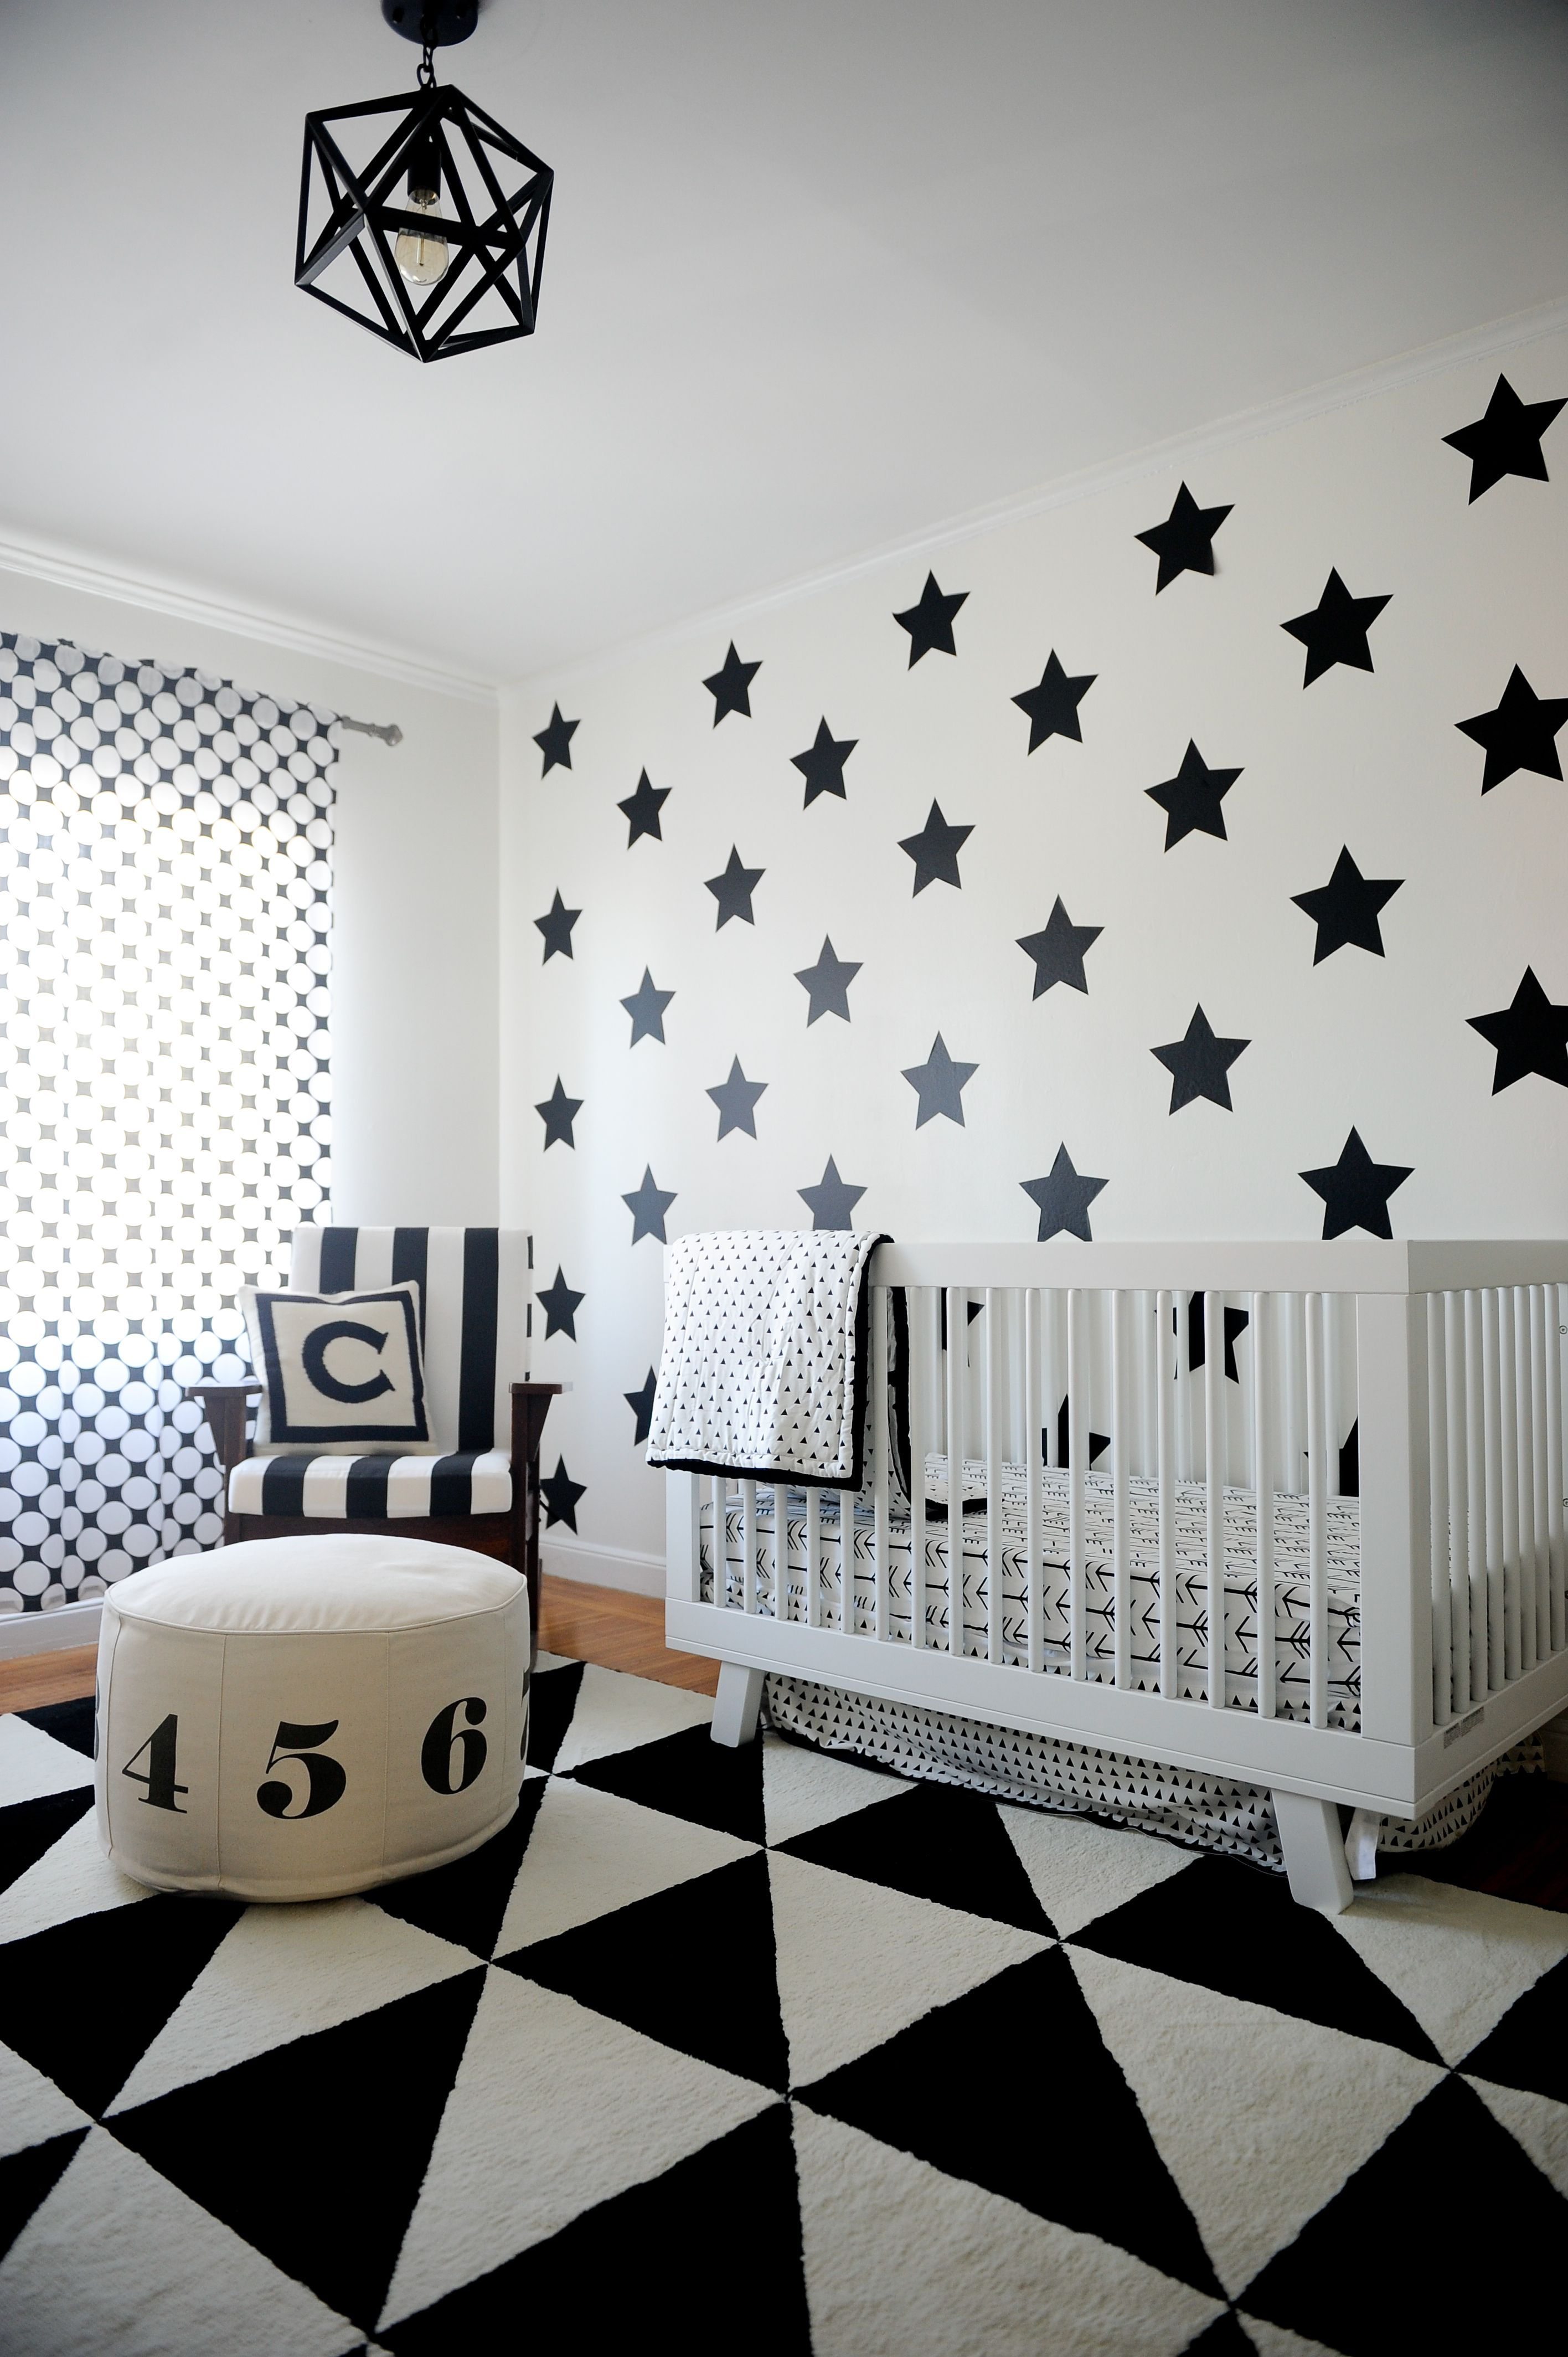 Black And White Geometric Nursery Love The Mix Of Modern Patterns Ubbiworld Diaper Pail Would Fit Right In Pnpartner